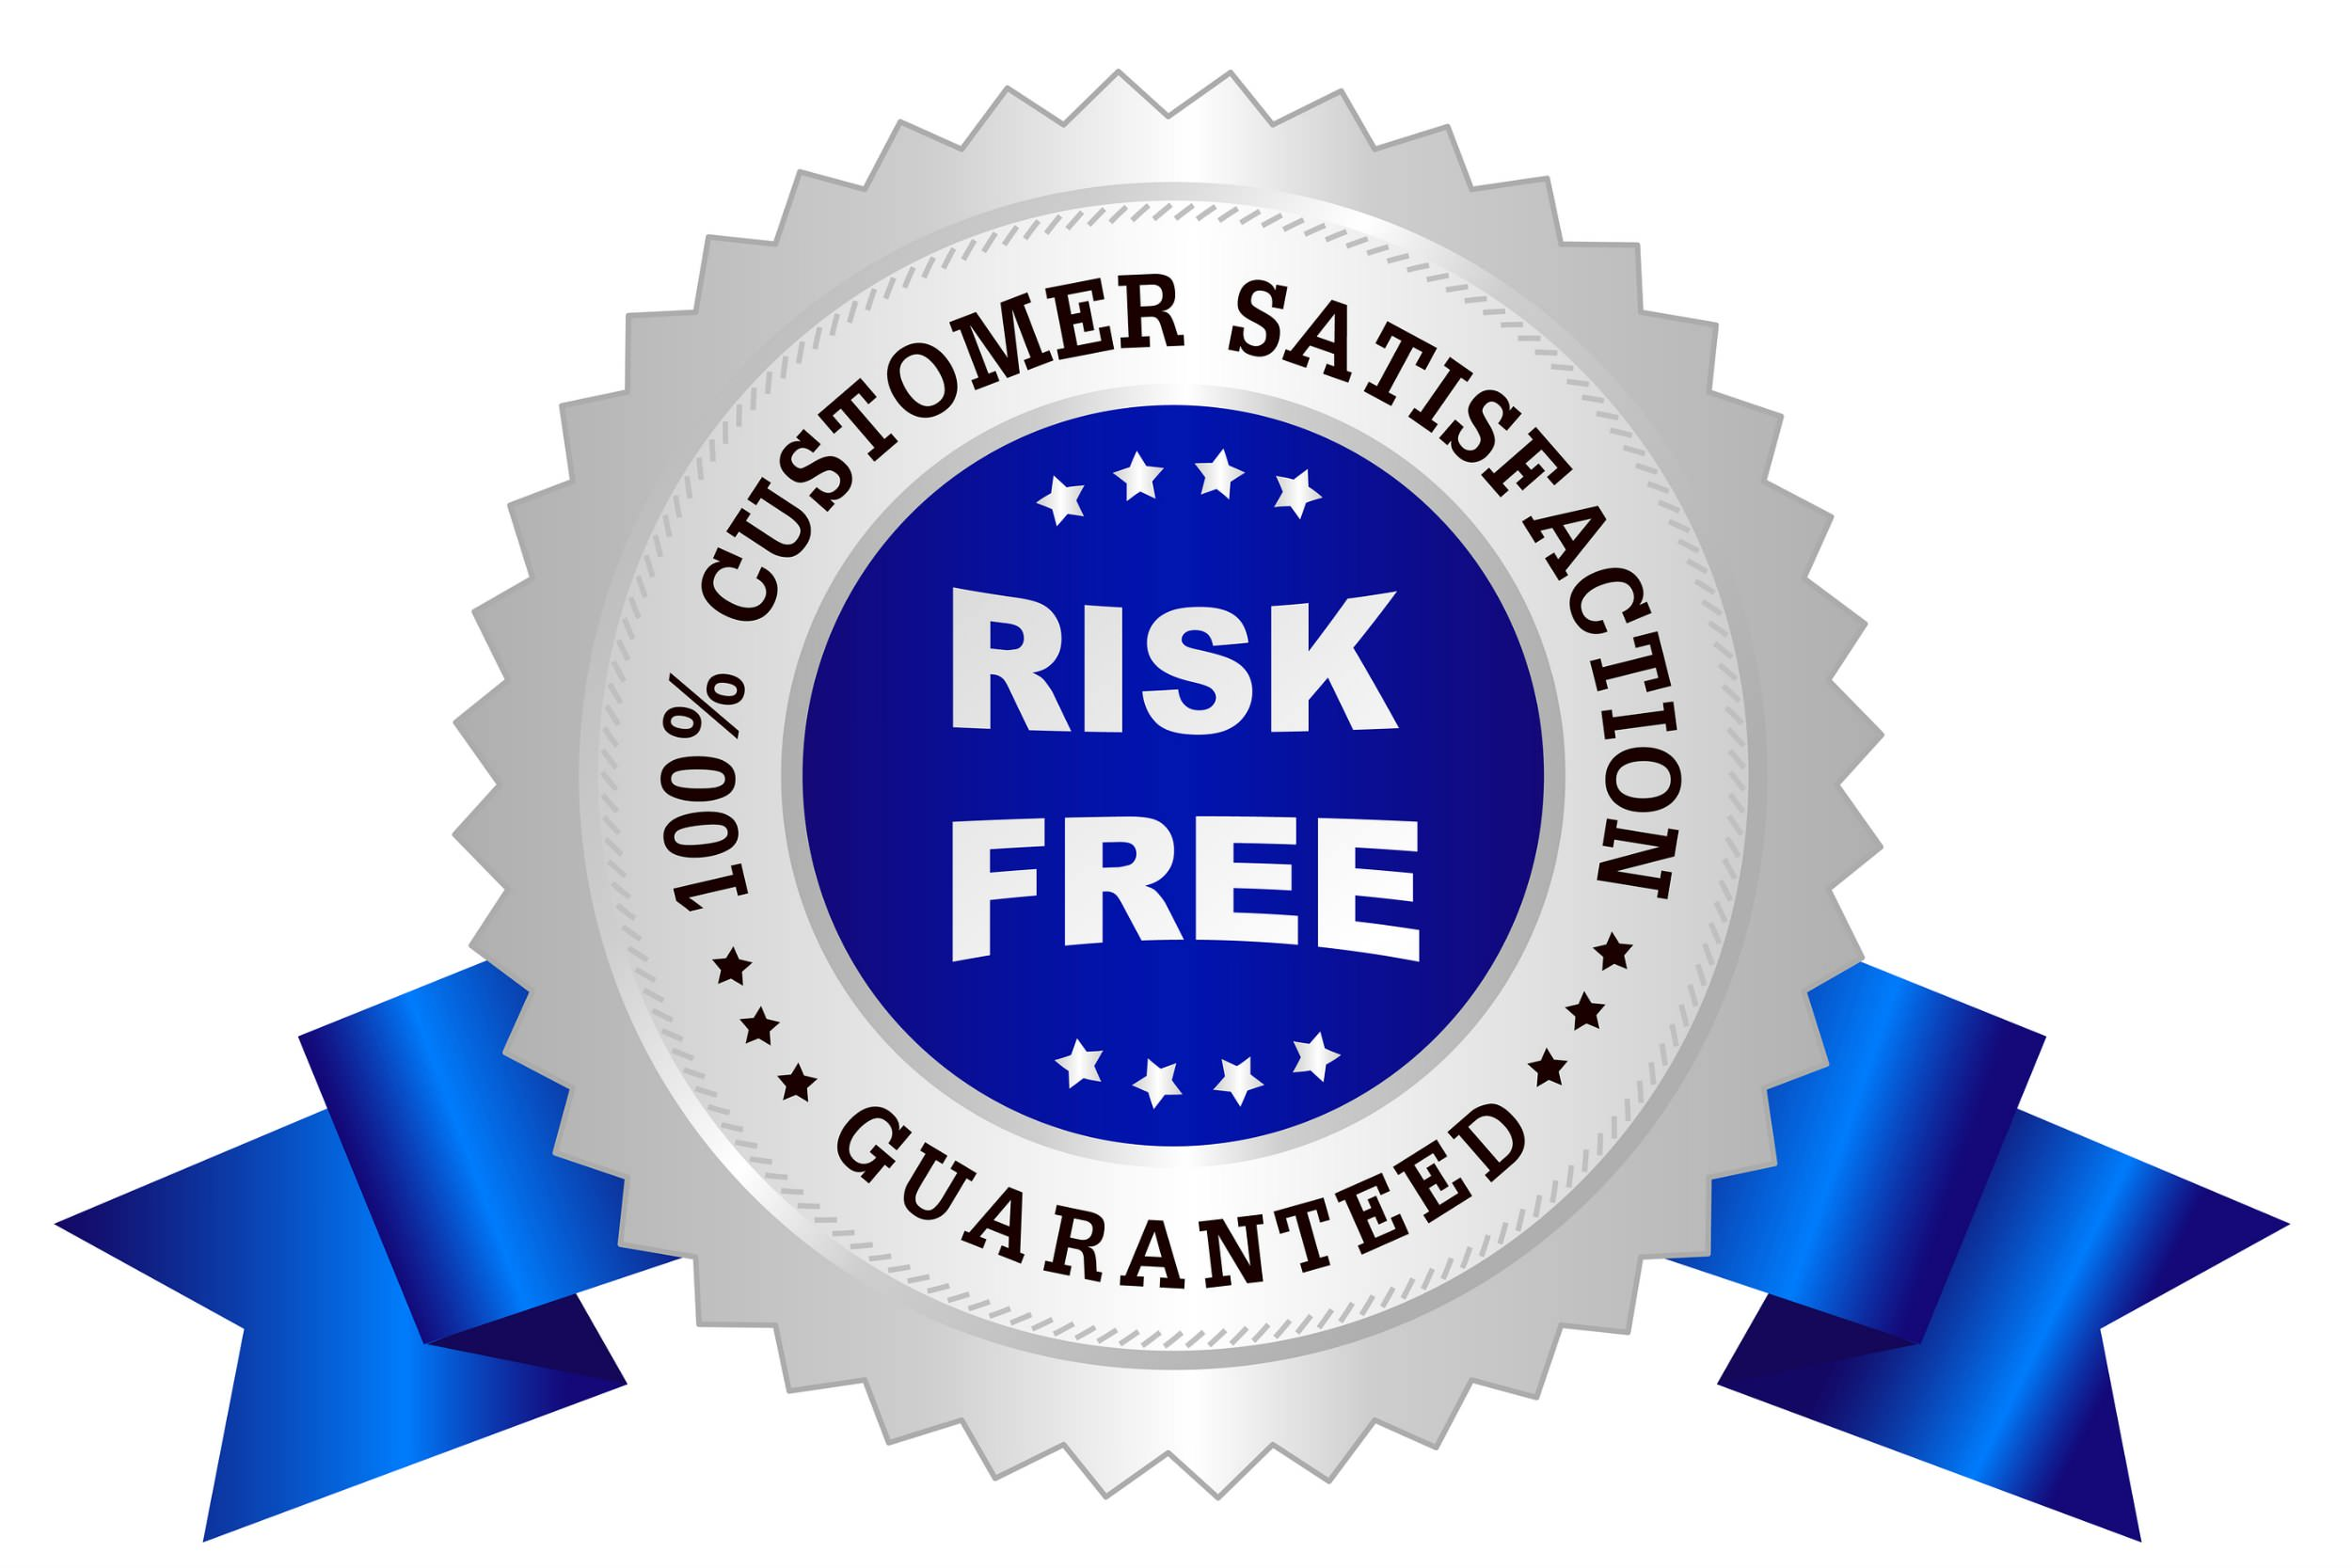 Badge that says 100% customer satisfaction guarantee around edges with risk free in center